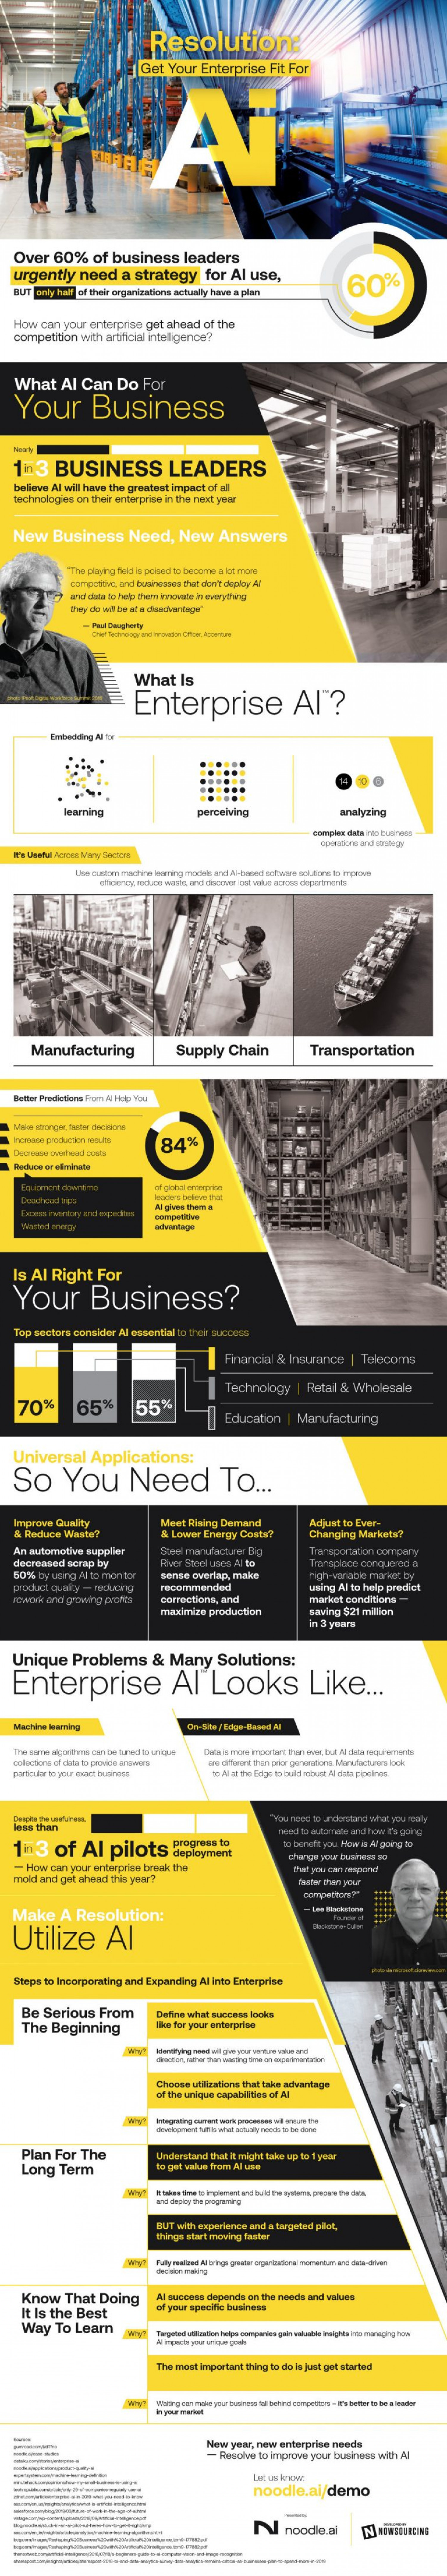 How Can AI Help Your Business? Infographic